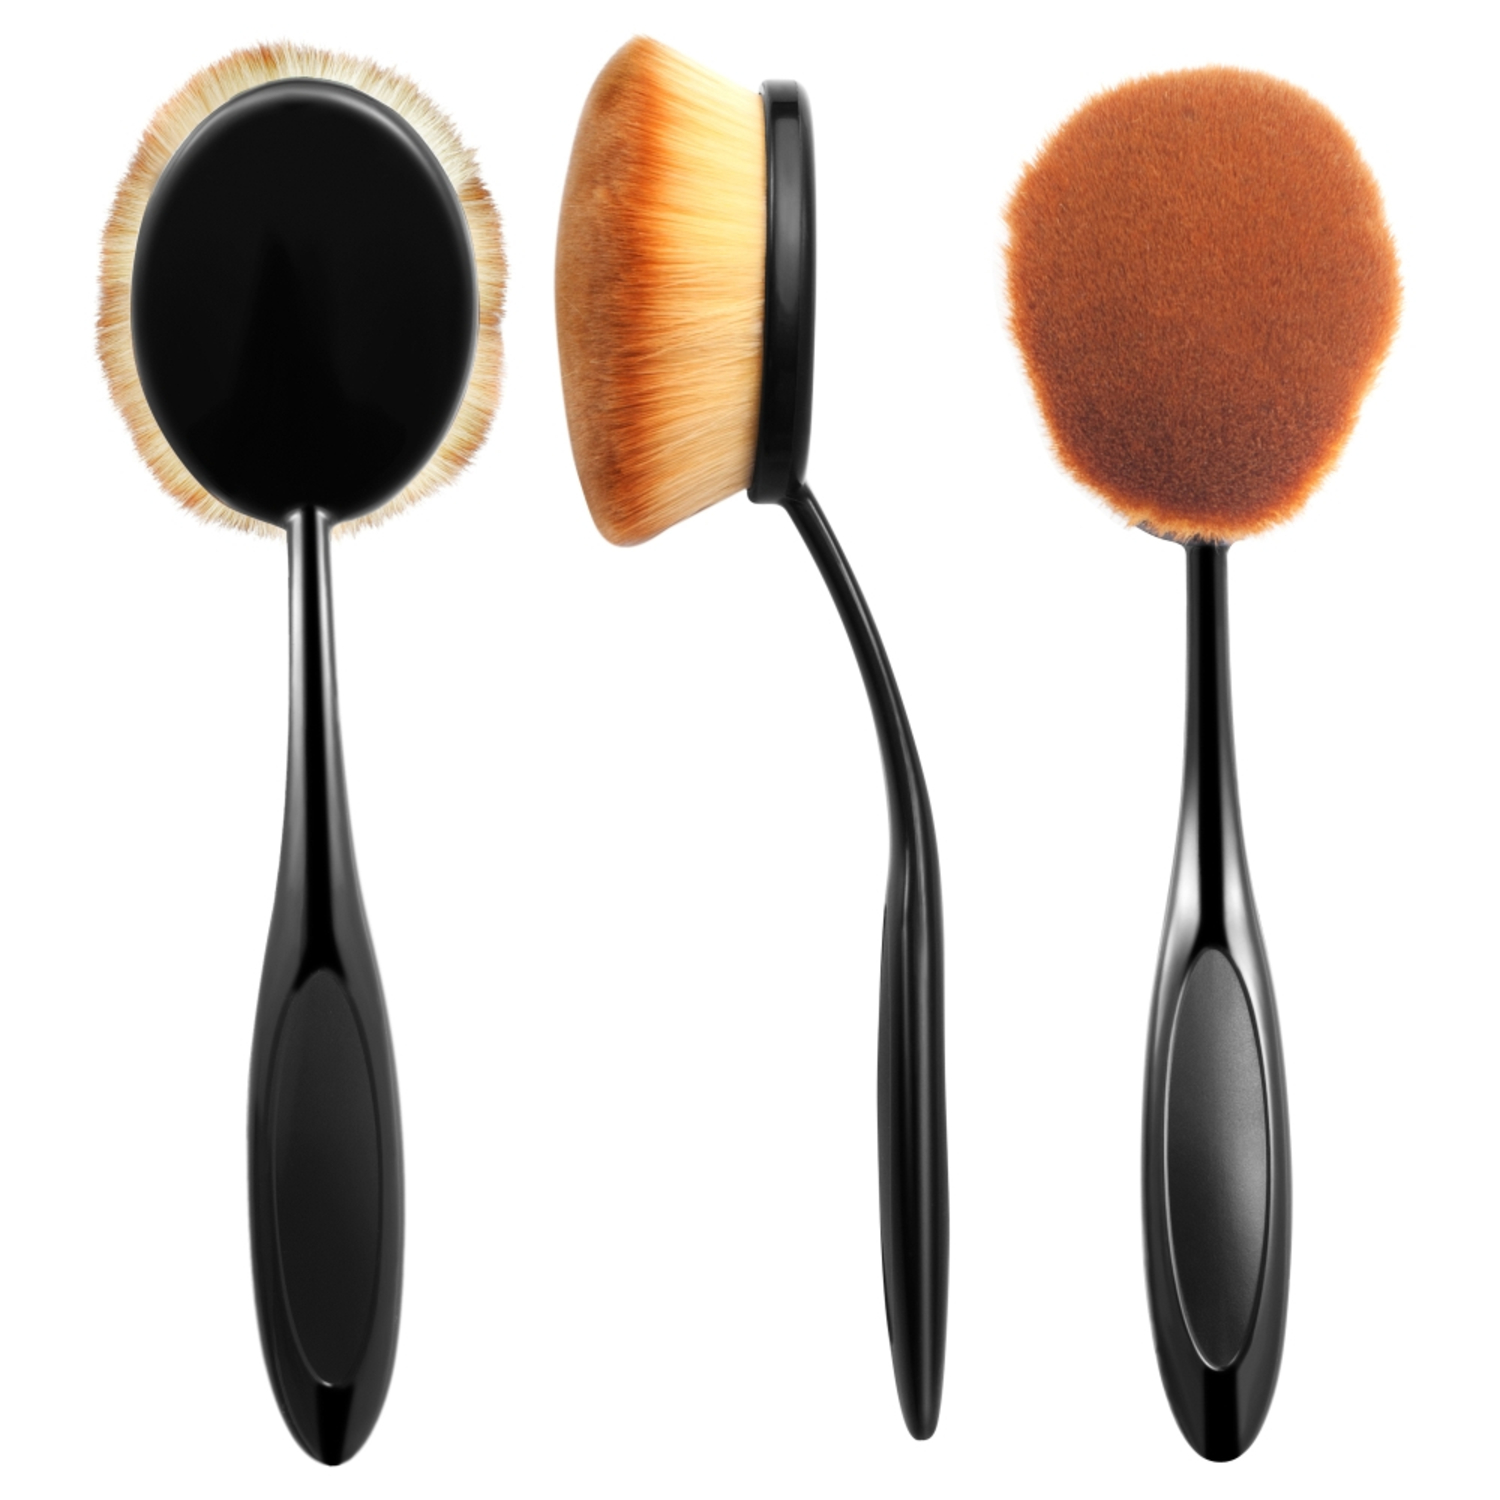 Zodaca Large Head Oval Cream Puff Cosmetic Toothbrush Shaped Power Makeup Foundation Brush - Black/Brown